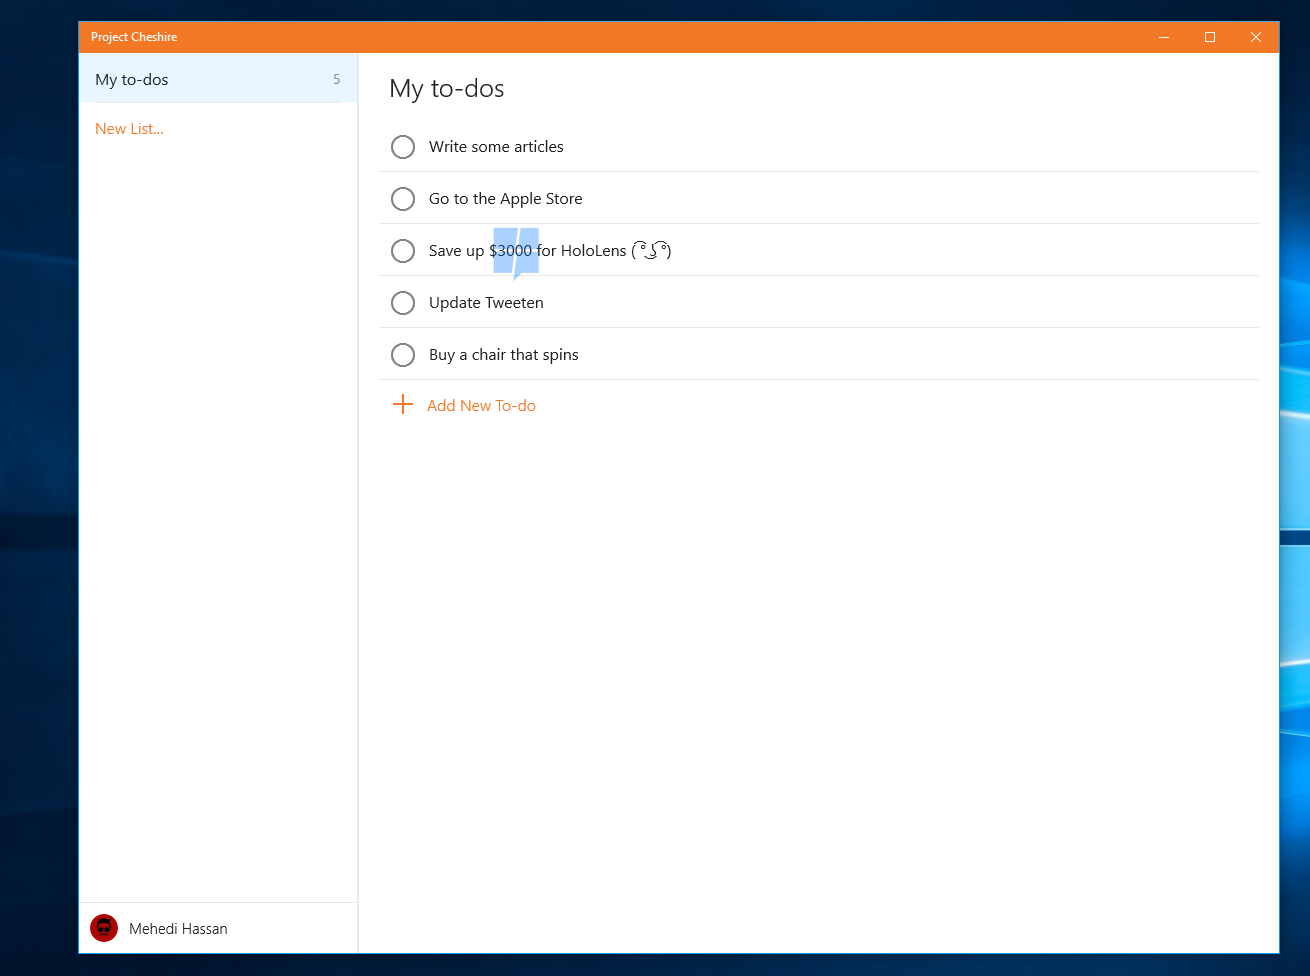 Hands-on with Project Cheshire, Microsoft's upcoming To-Do list app for Windows 10 2